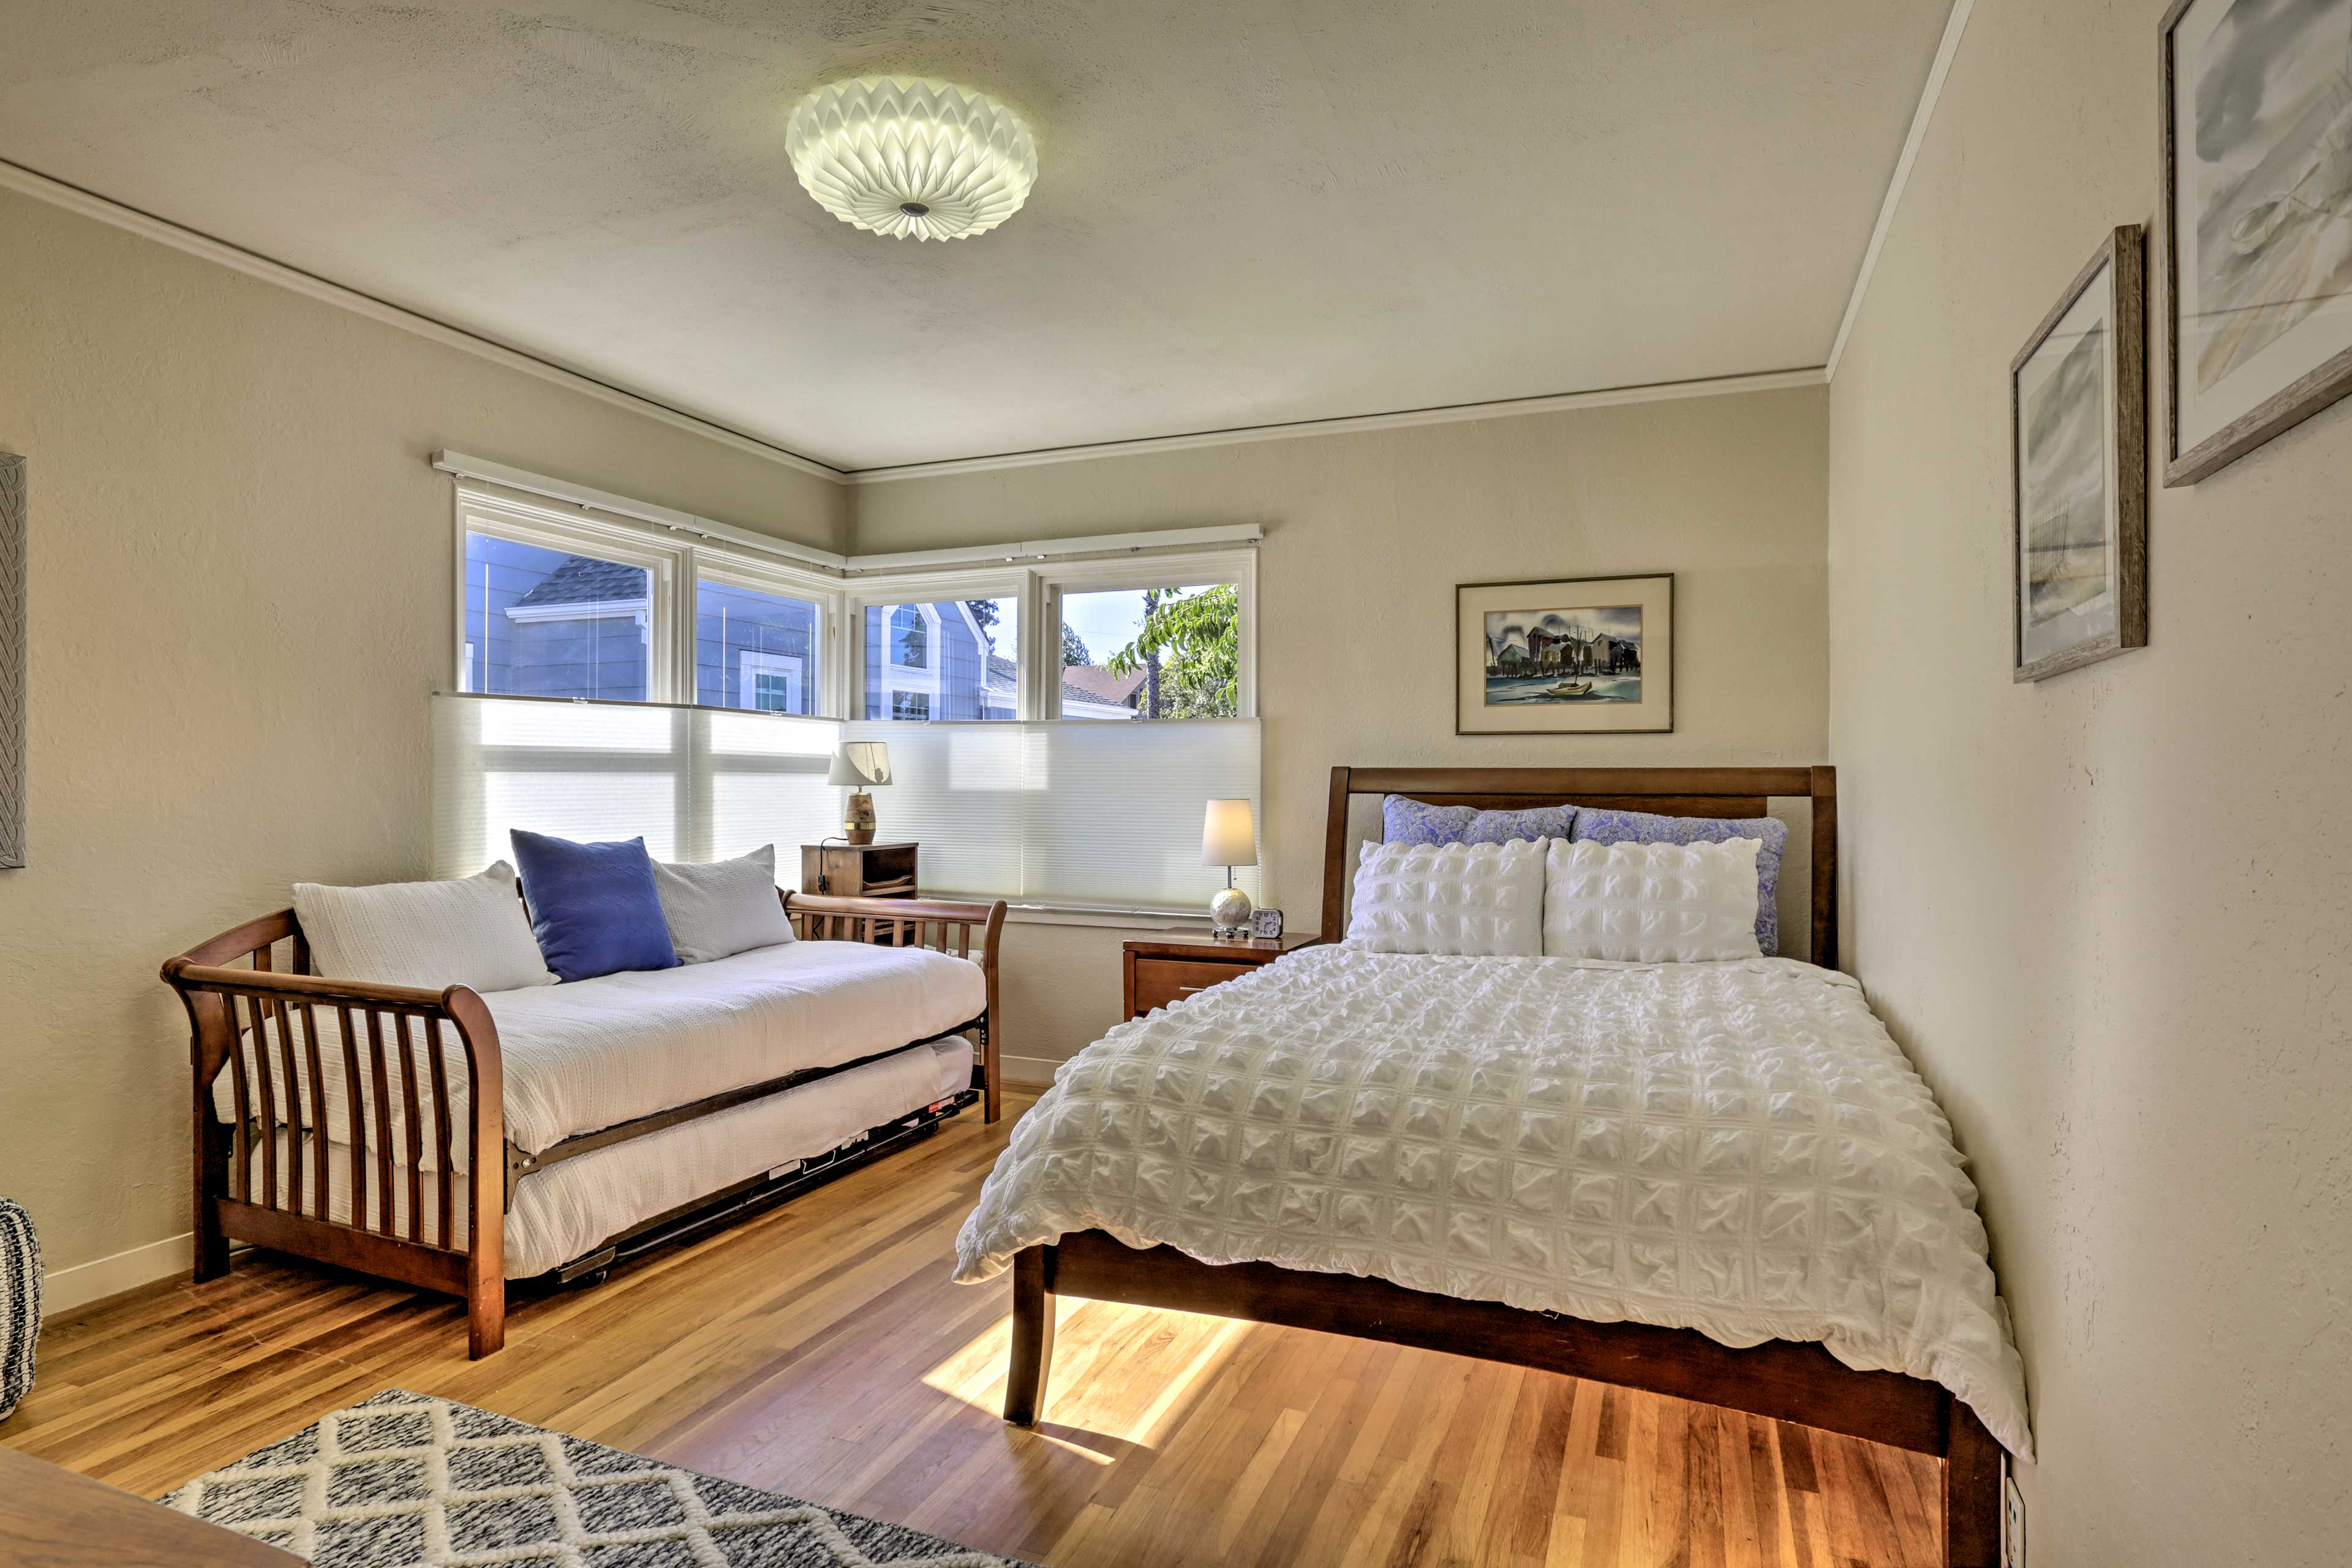 The second bedroom includes a queen bed and 2 twin beds.